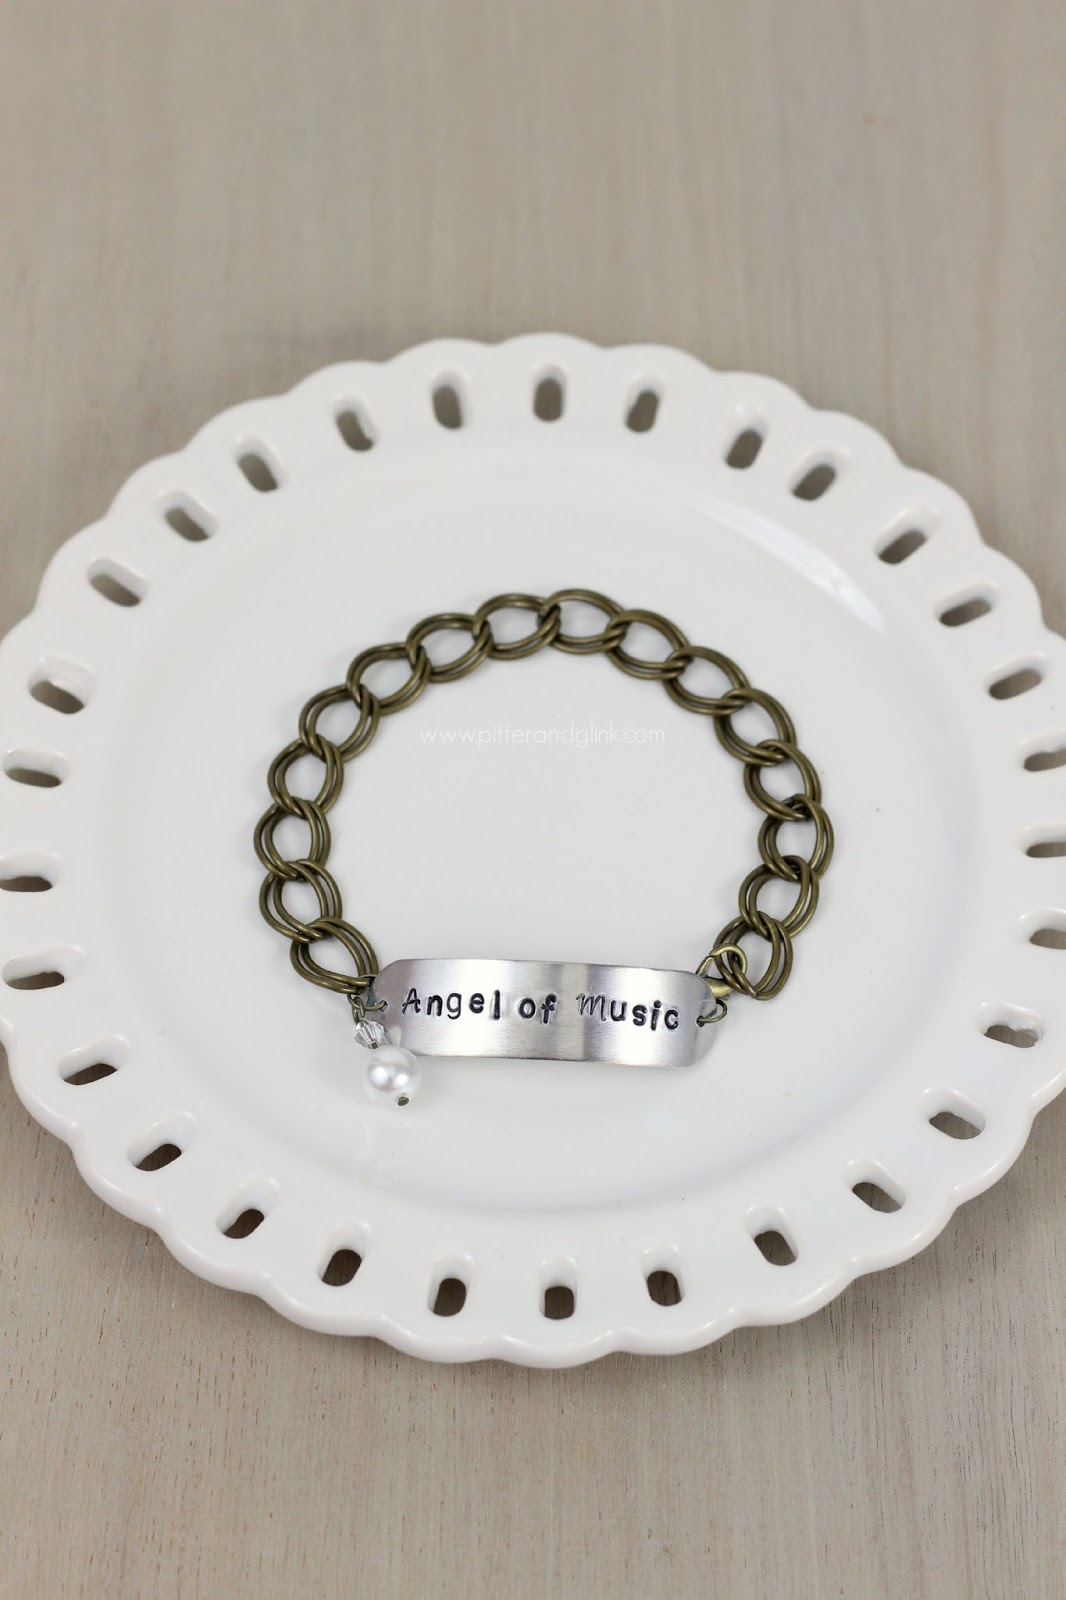 DIY Stamped Metal Bracelet--An easy, inexpensive gift idea!  via pitterandglink.com